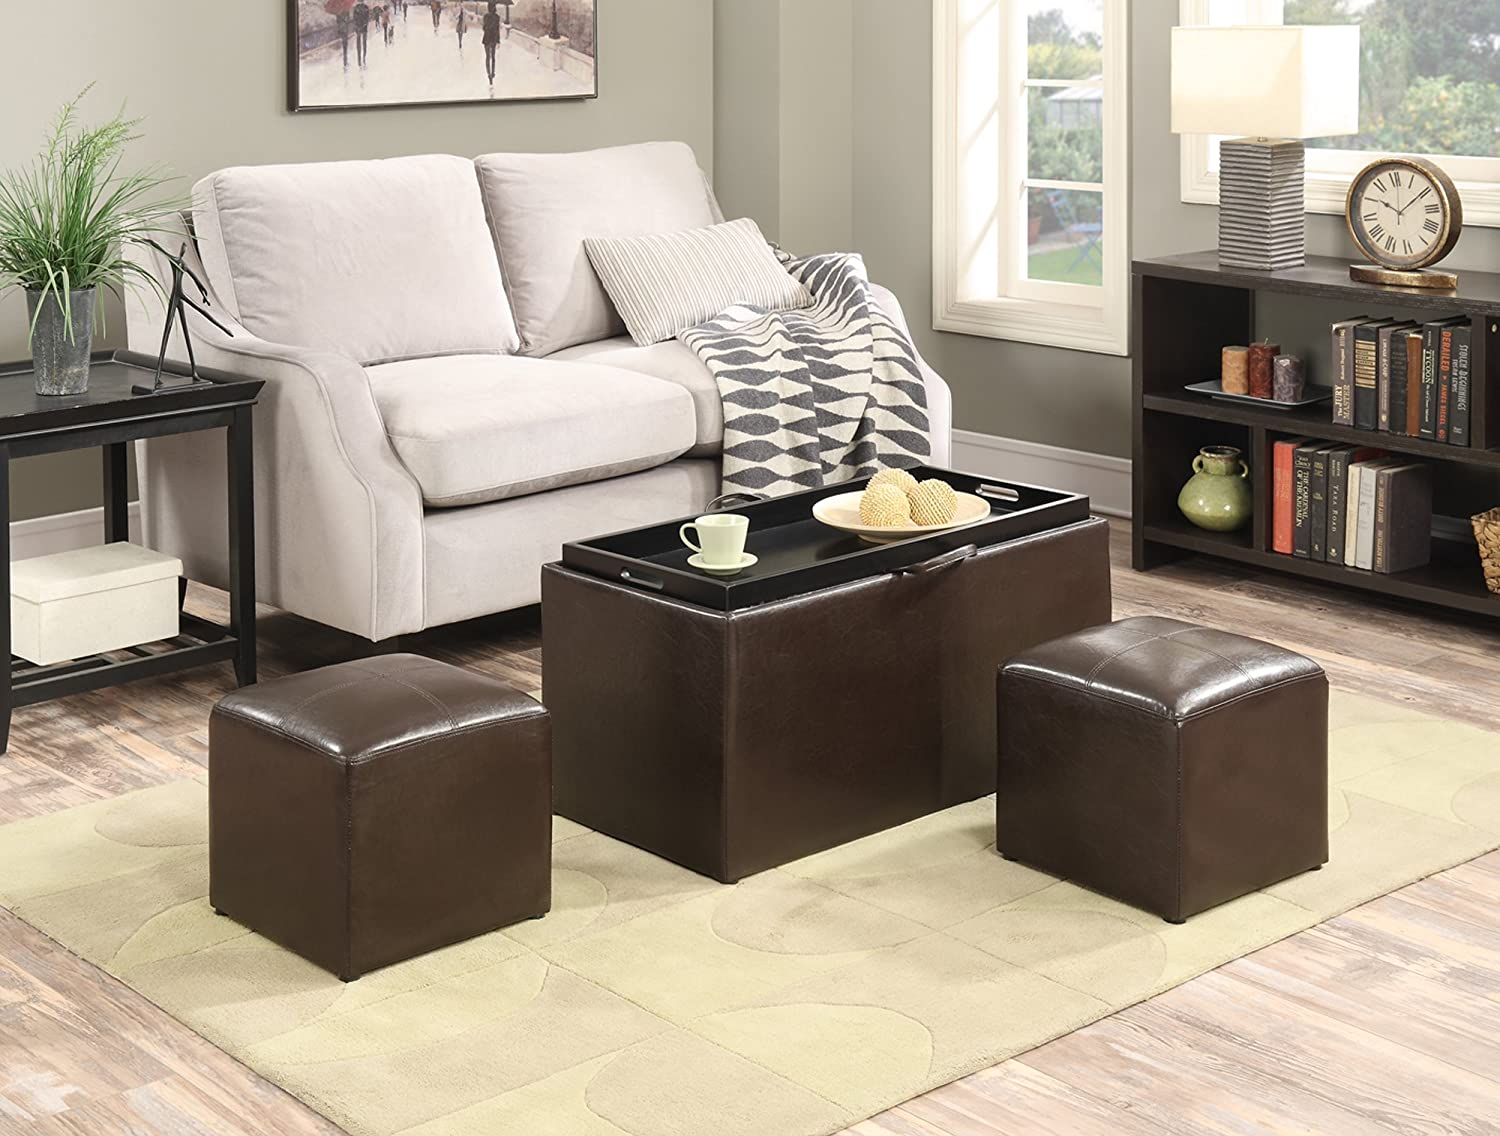 Amazon.com: Convenience Concepts 143012 Sheridan Faux Leather Storage Bench  With 2 Side Ottomans, Dark Espresso: Kitchen U0026 Dining